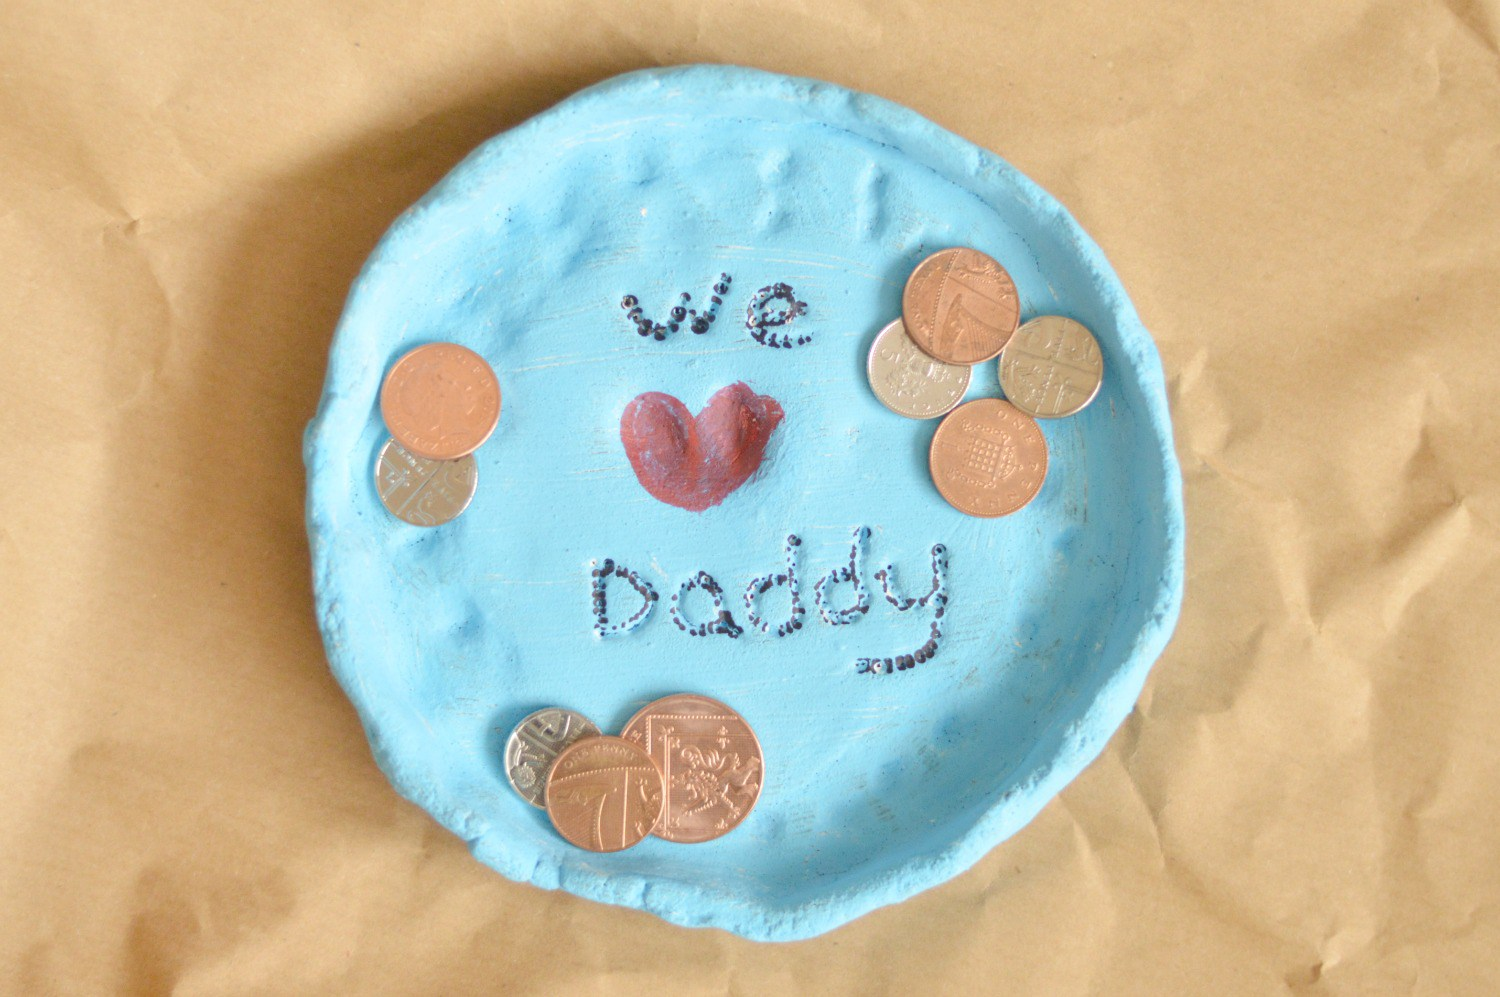 Plate for Daddy - I don't if anything warms the heart quite like a homemade gift from your kiddo! Father's Day is no exception - here are 25 homemade Father's Day gifts from kids  - and ones that Dad can actually use!  Keep reading to check them out!